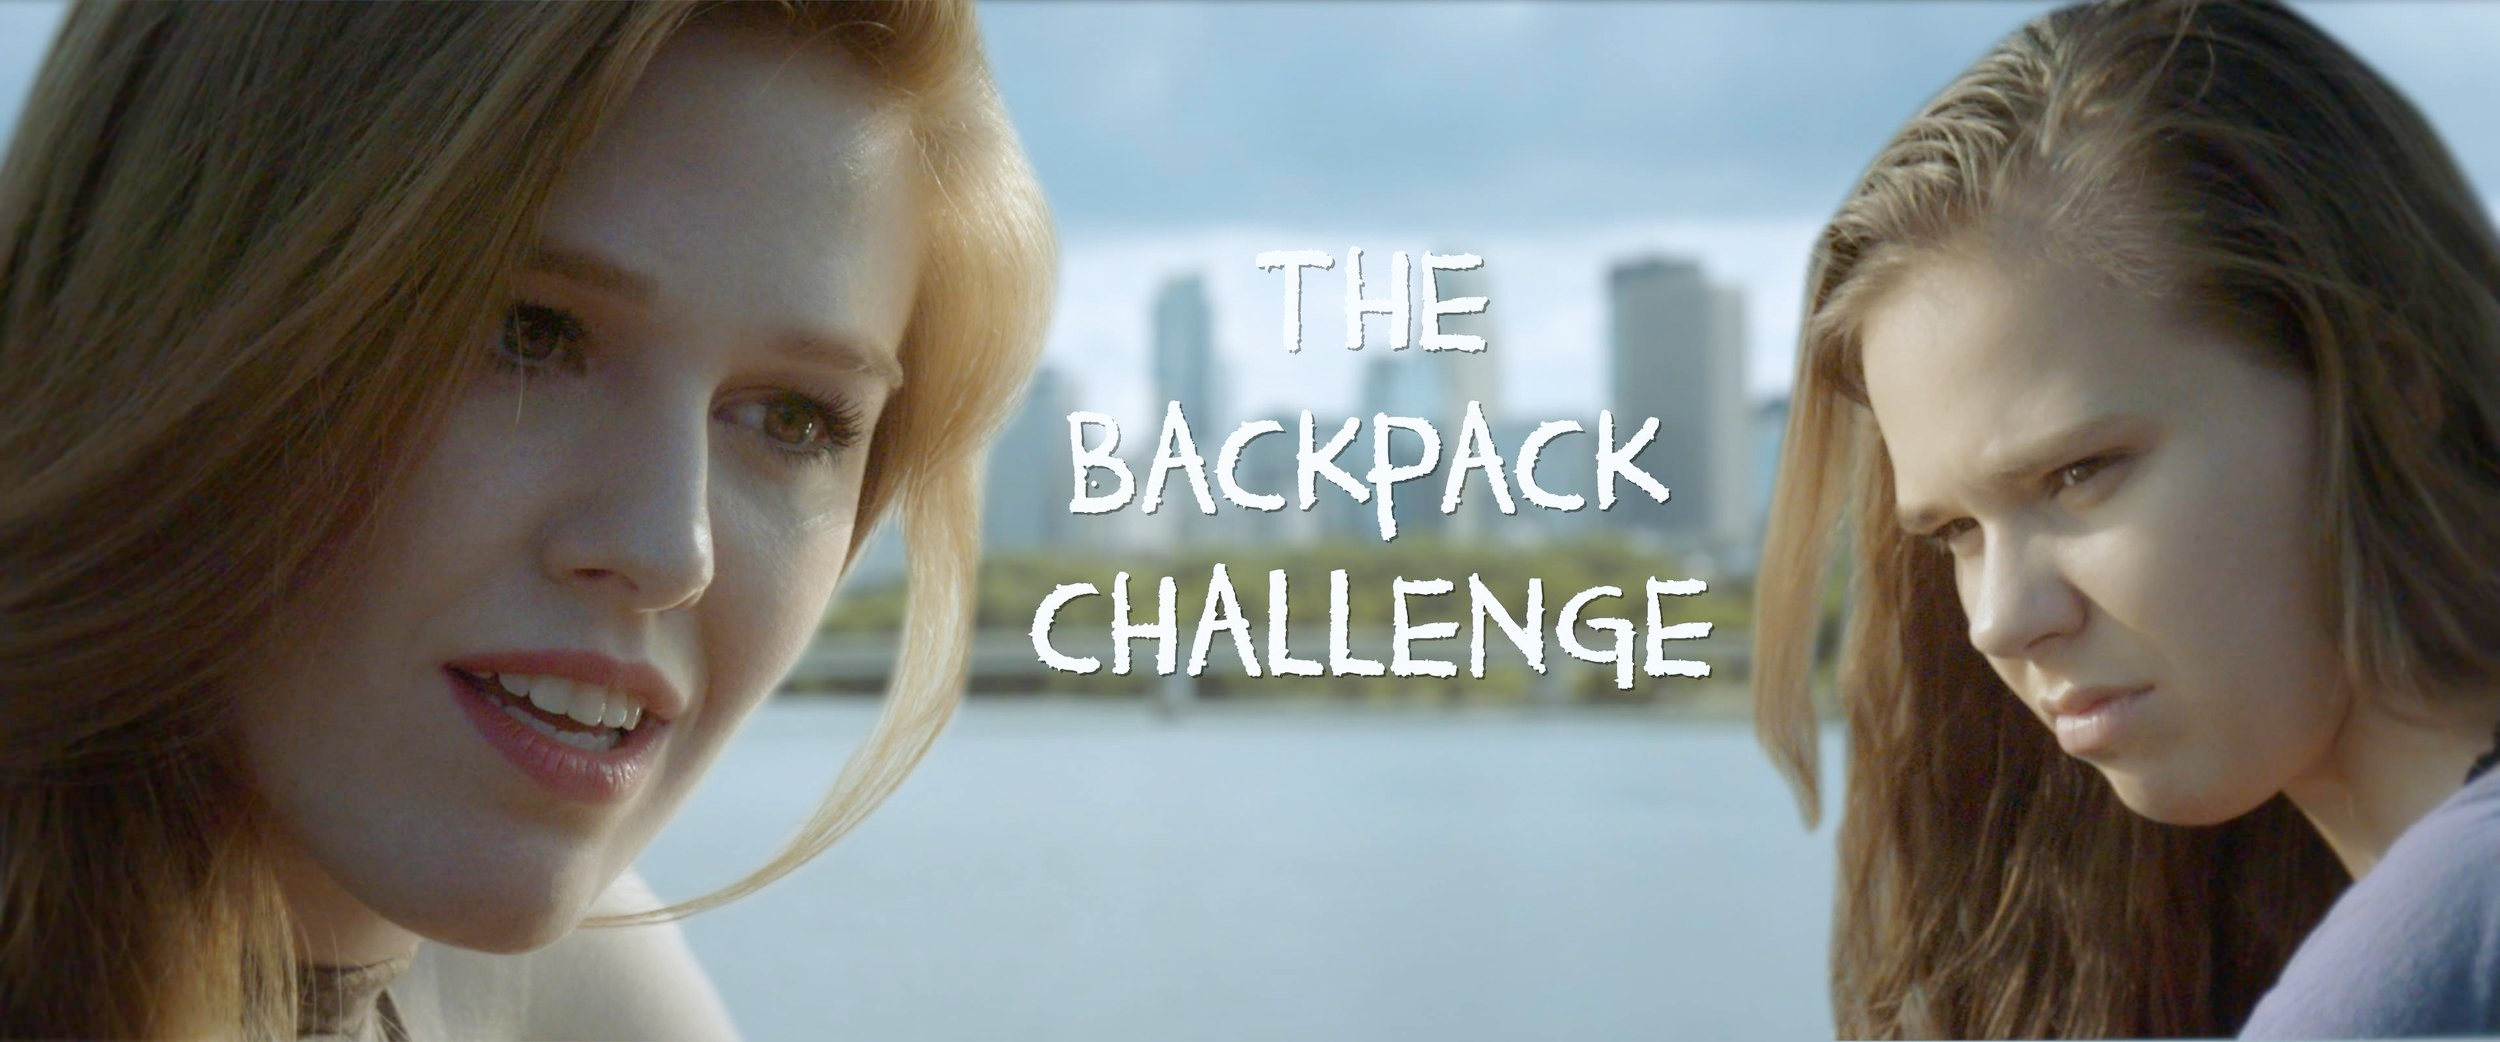 The Backpack Challenge - This short film is out now! Watch it by clicking here!